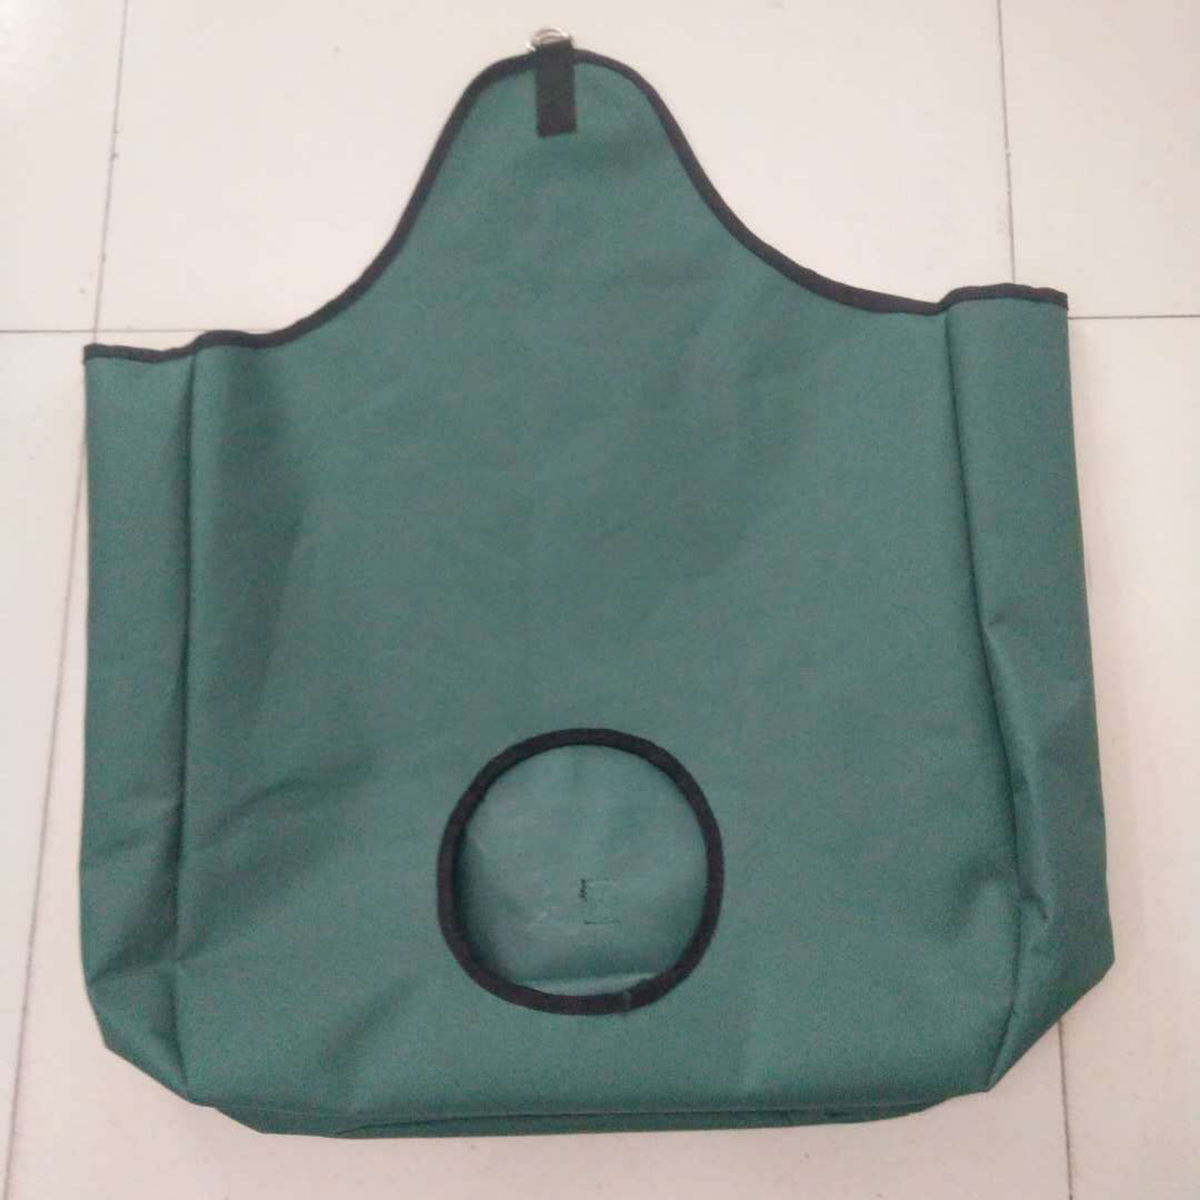 600D Oxford Cloth Horse Hay Bag Feeder Net With Cut Out Hole Reduce Wastage Farm Supplies